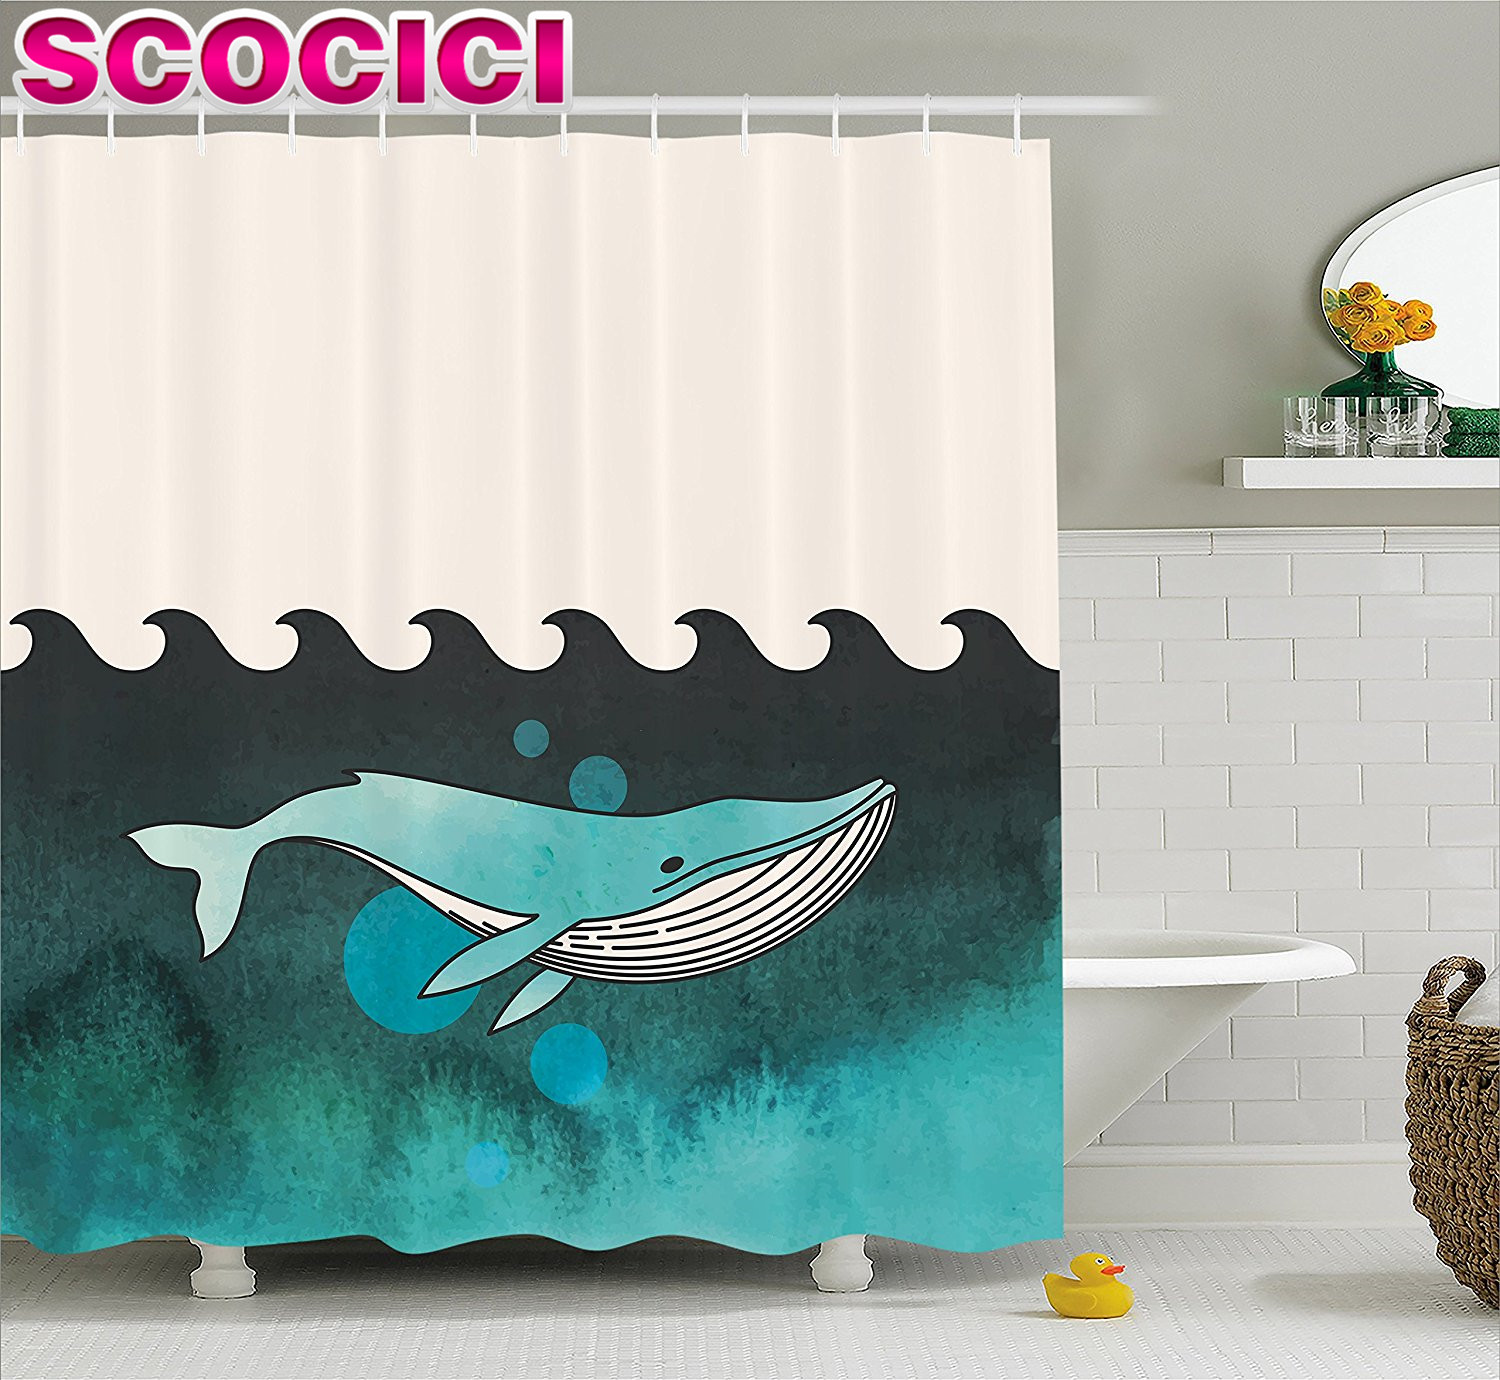 Whale Decor Shower Curtain Huge Whale Swimming Under the Ocean Near an Palm Island with Wooden Skull Fabric Bathroom Decor Set G